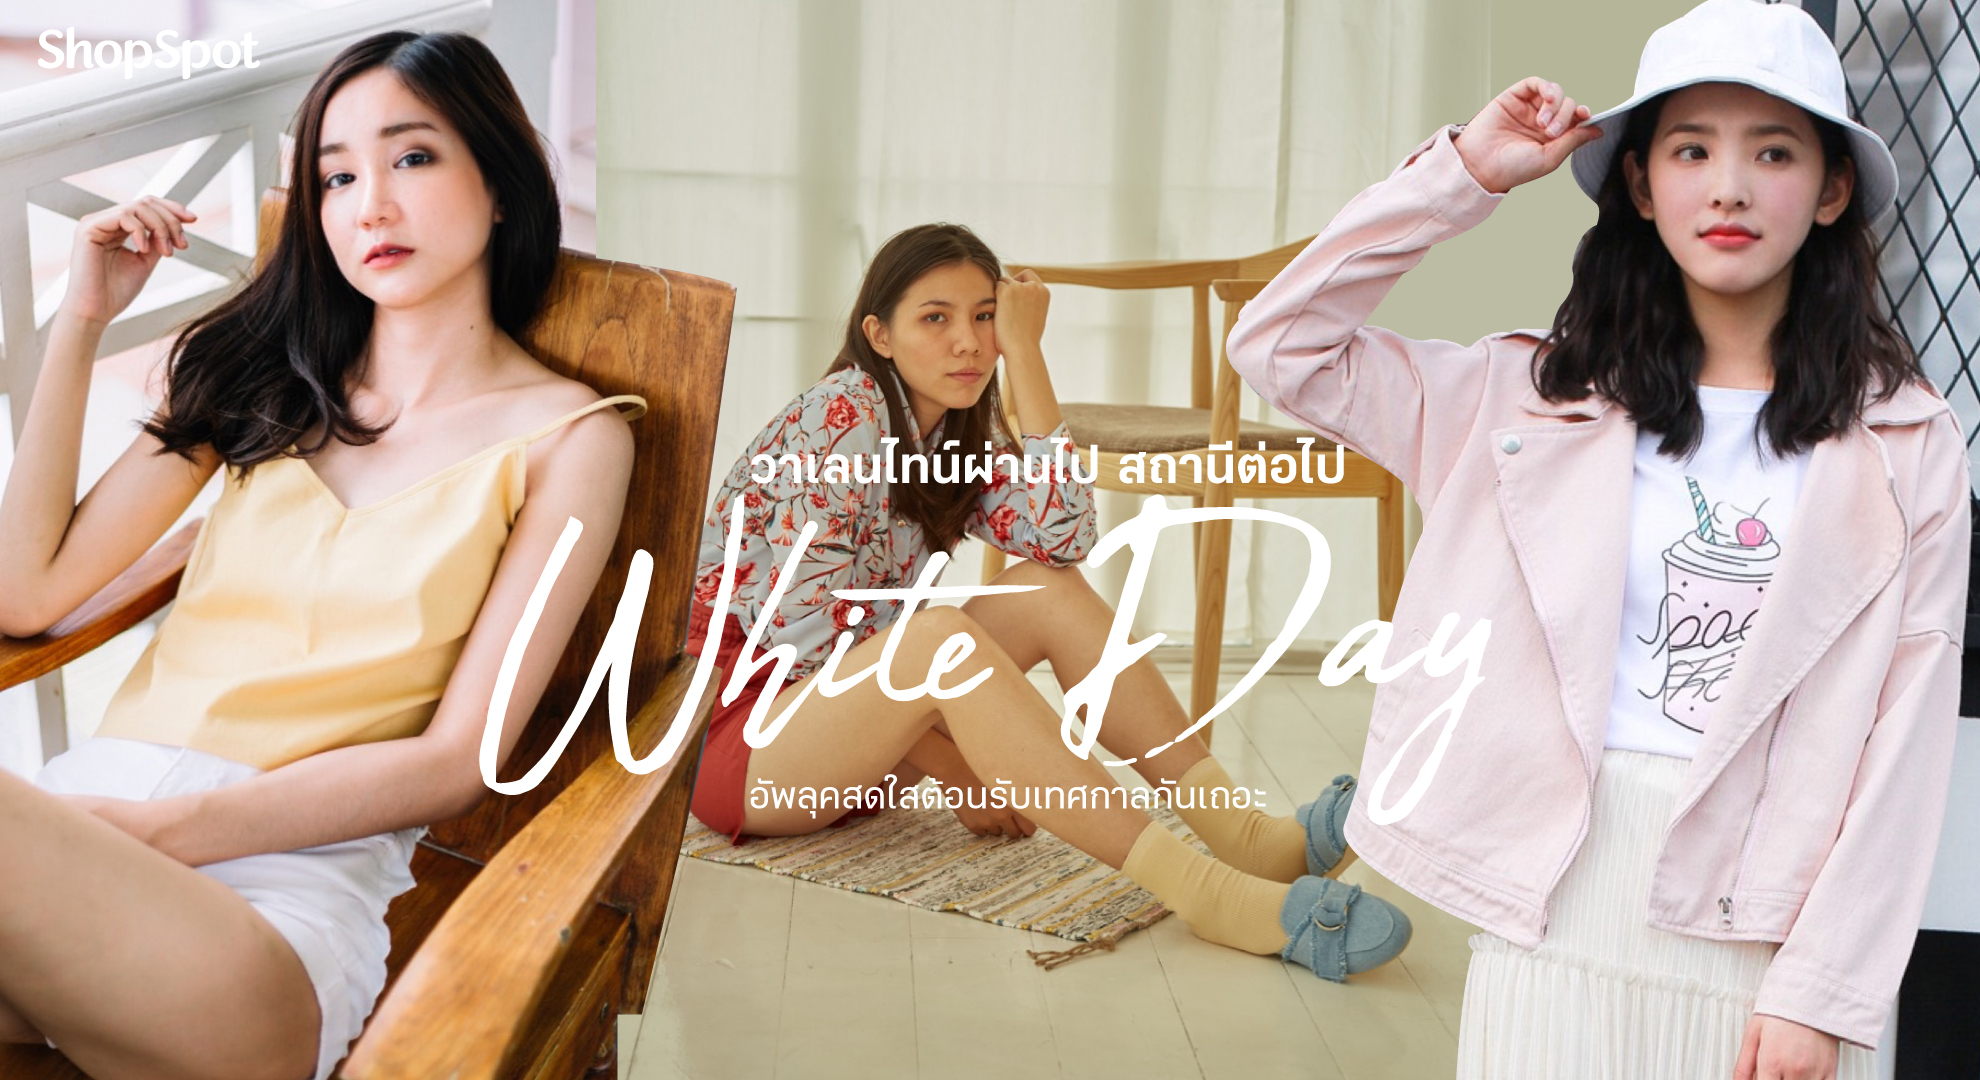 SHOPSPOT_whiteday